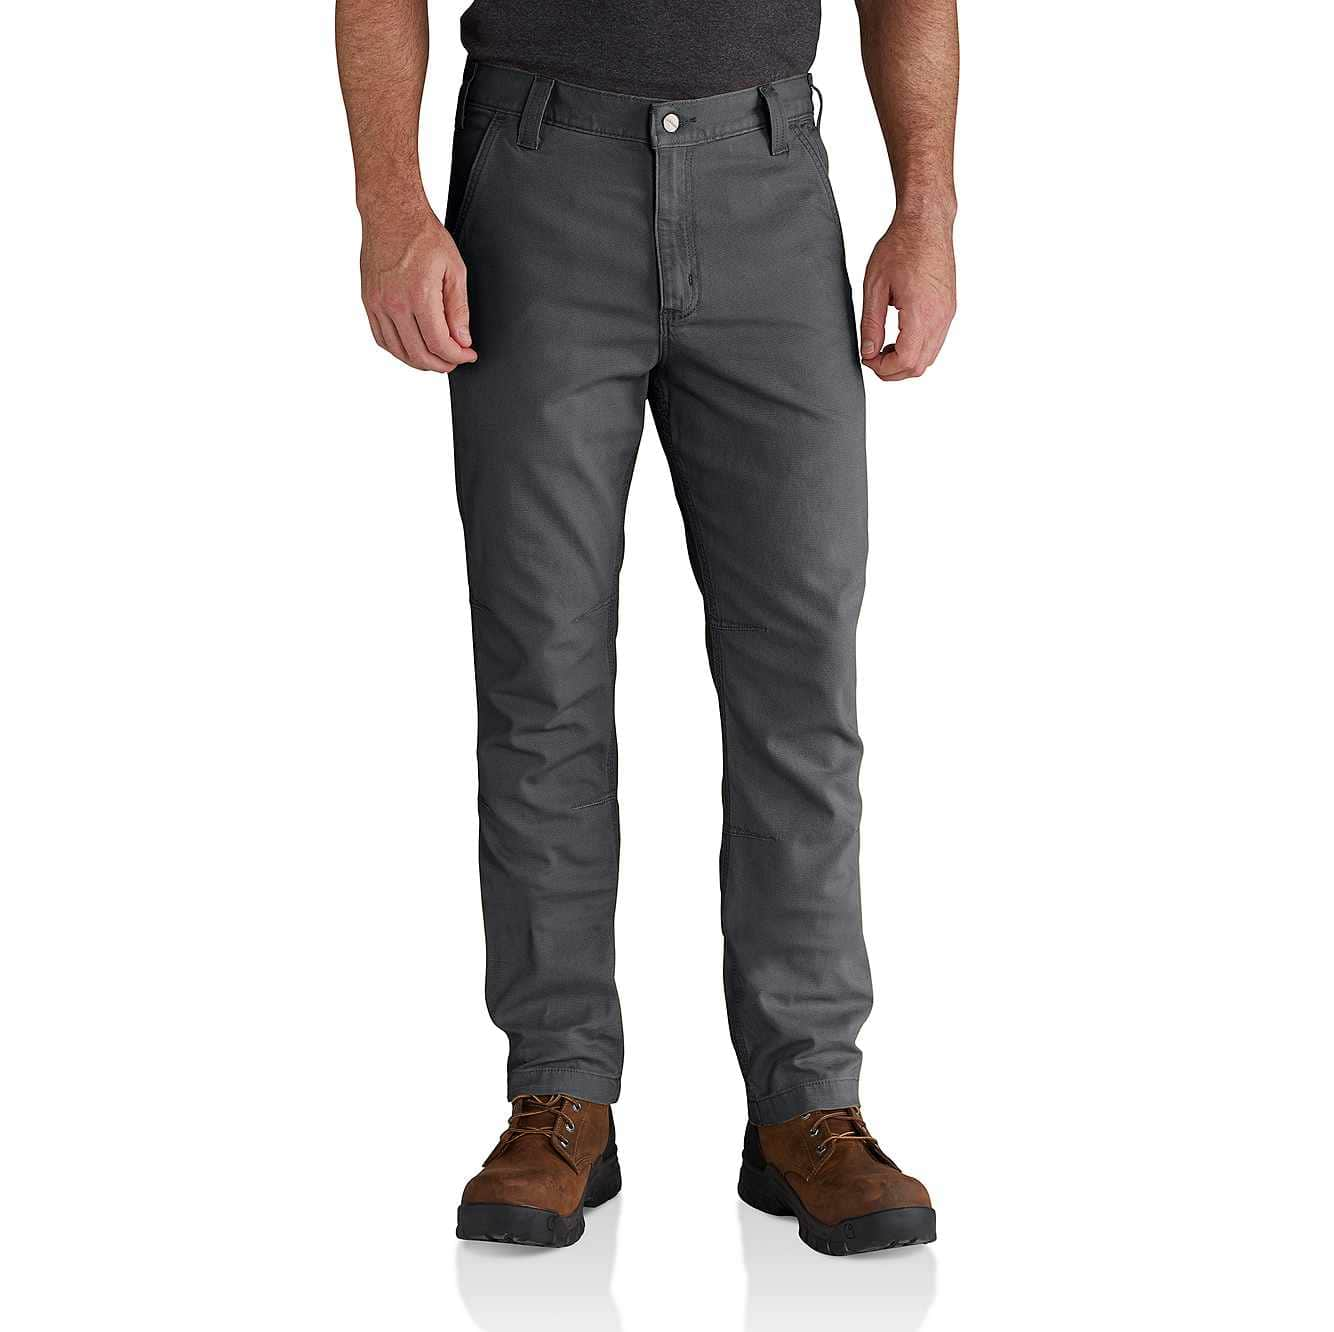 Picture of Rugged Flex® Rigby Straight Fit Pant in Shadow